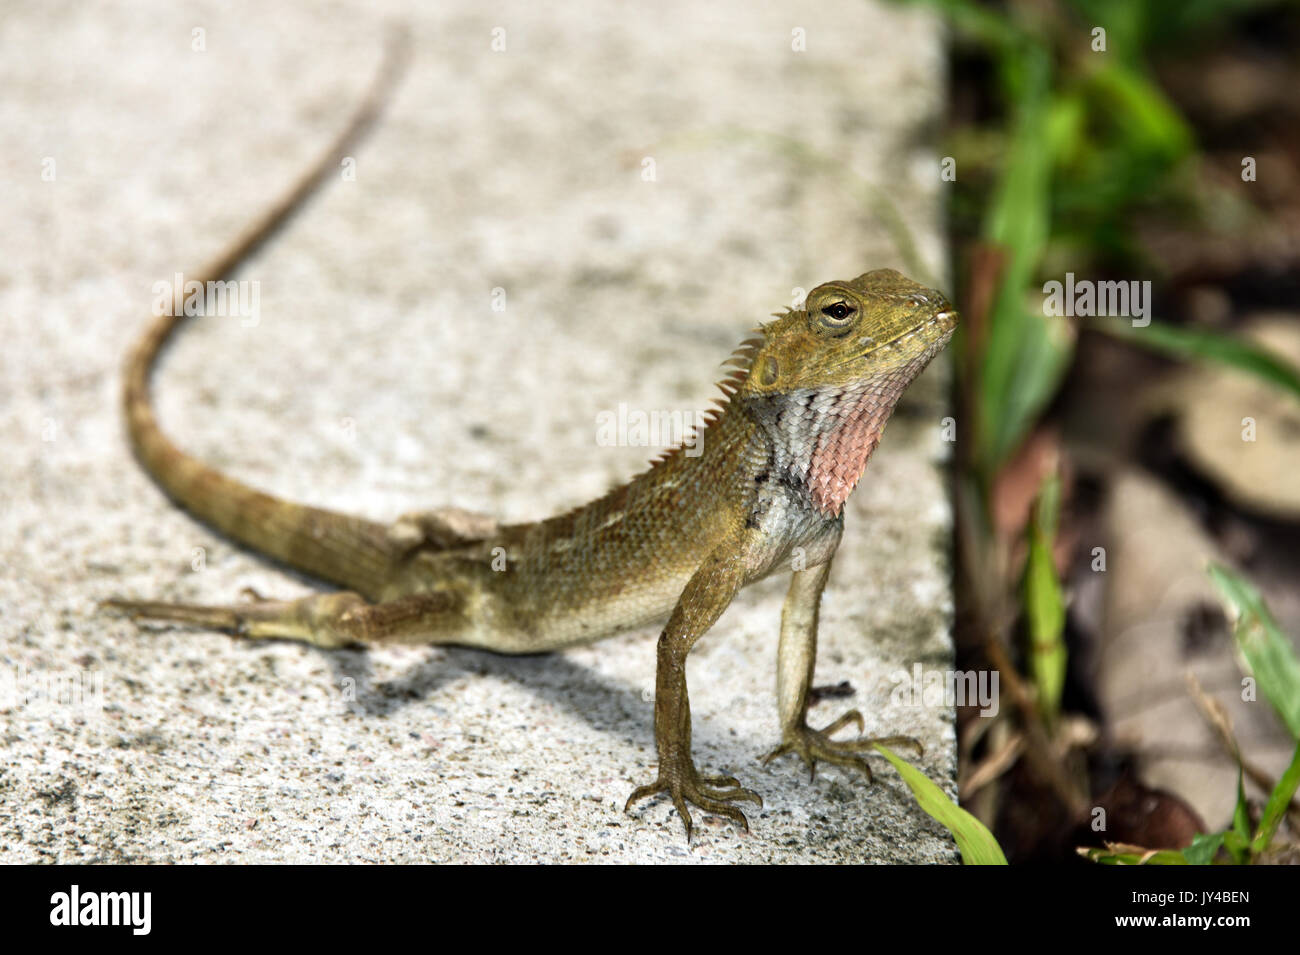 Crested Lizard - Stock Image